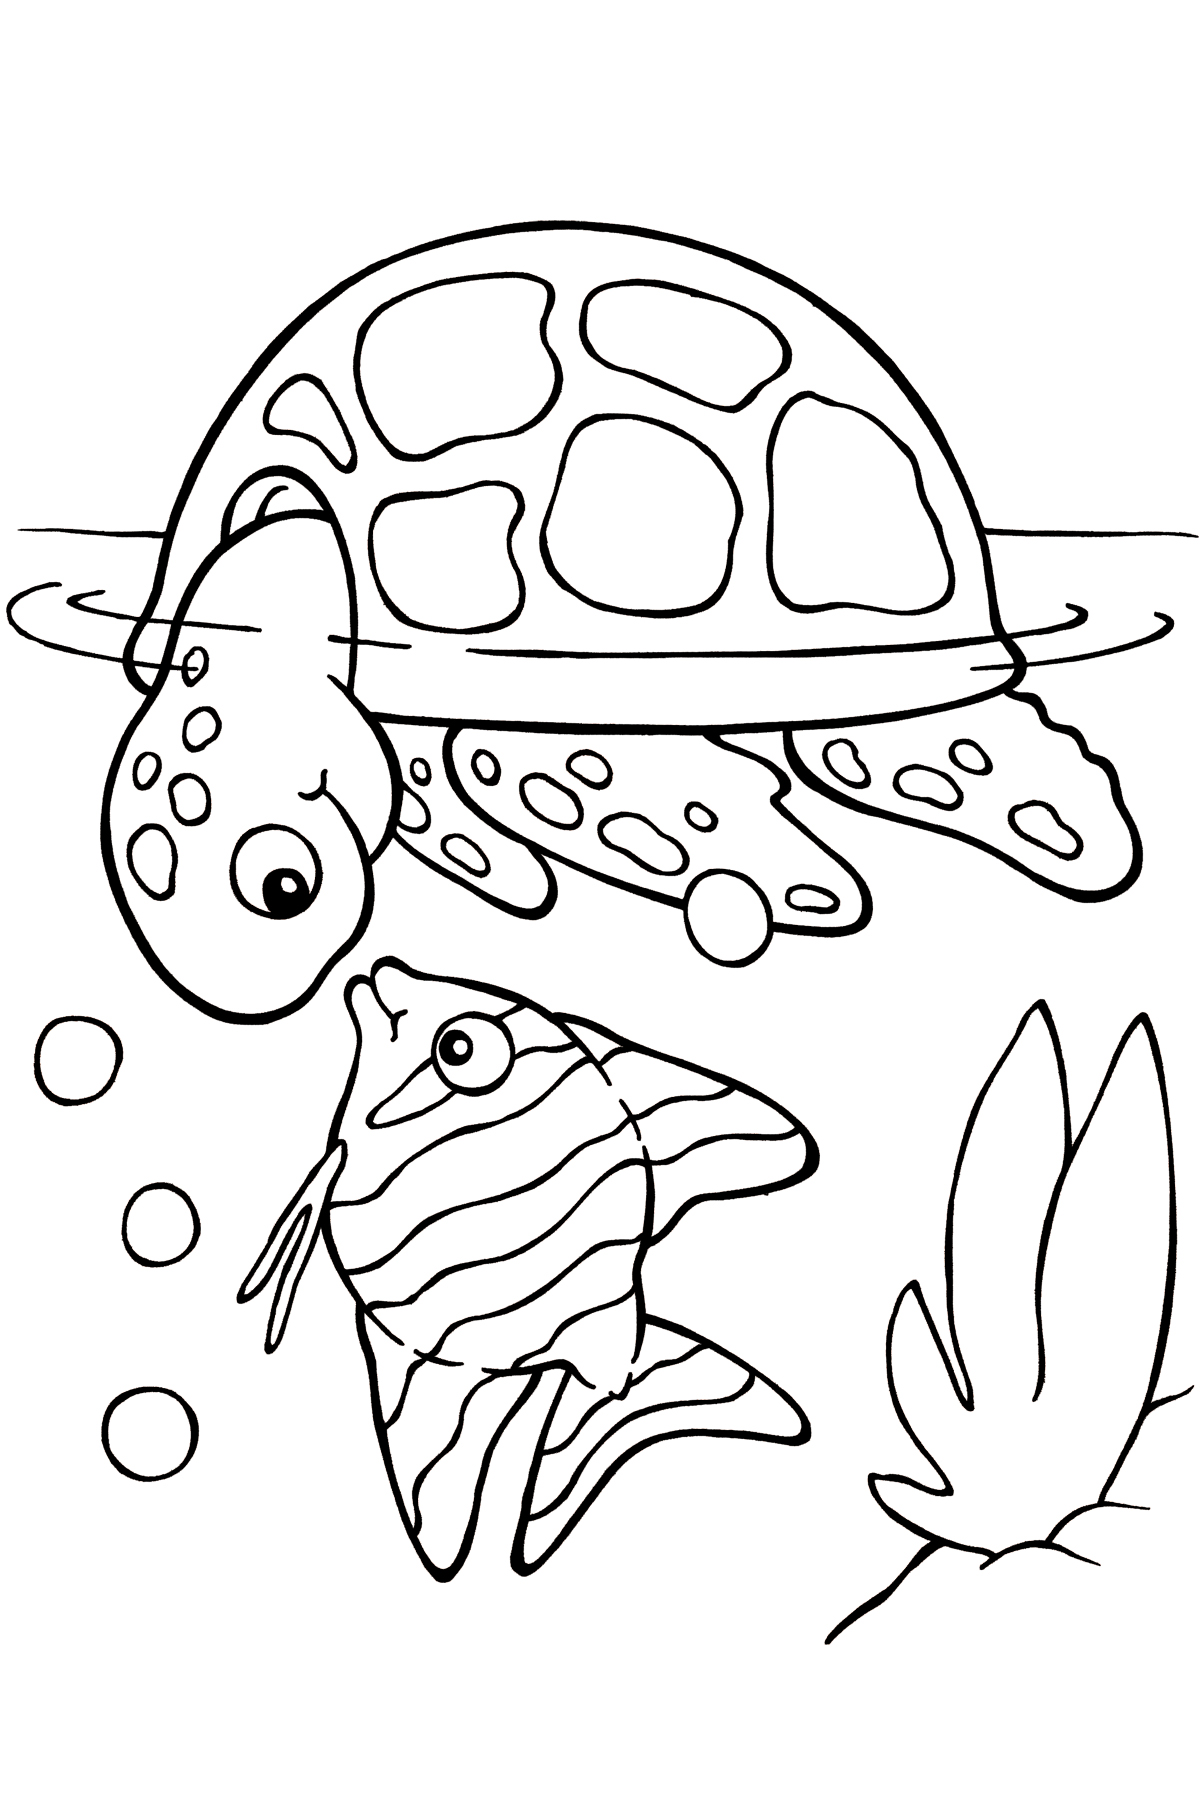 Sea turtle coloring pages to download and print for free for Sea turtles coloring pages